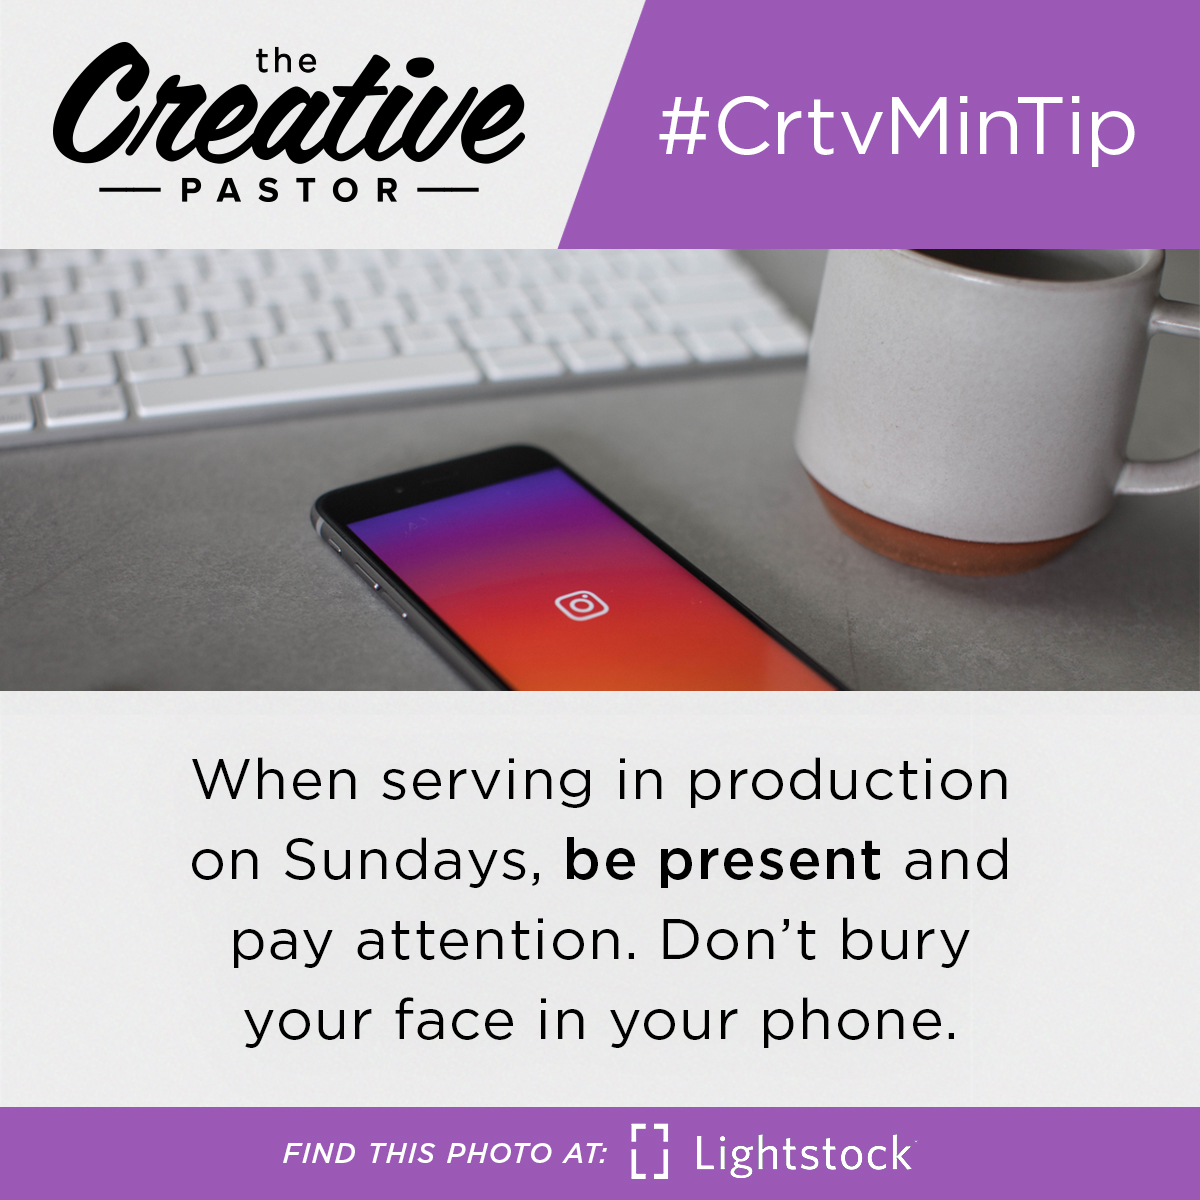 When serving in production on Sundays, be present and pay attention. Don't bury your face in your phone.